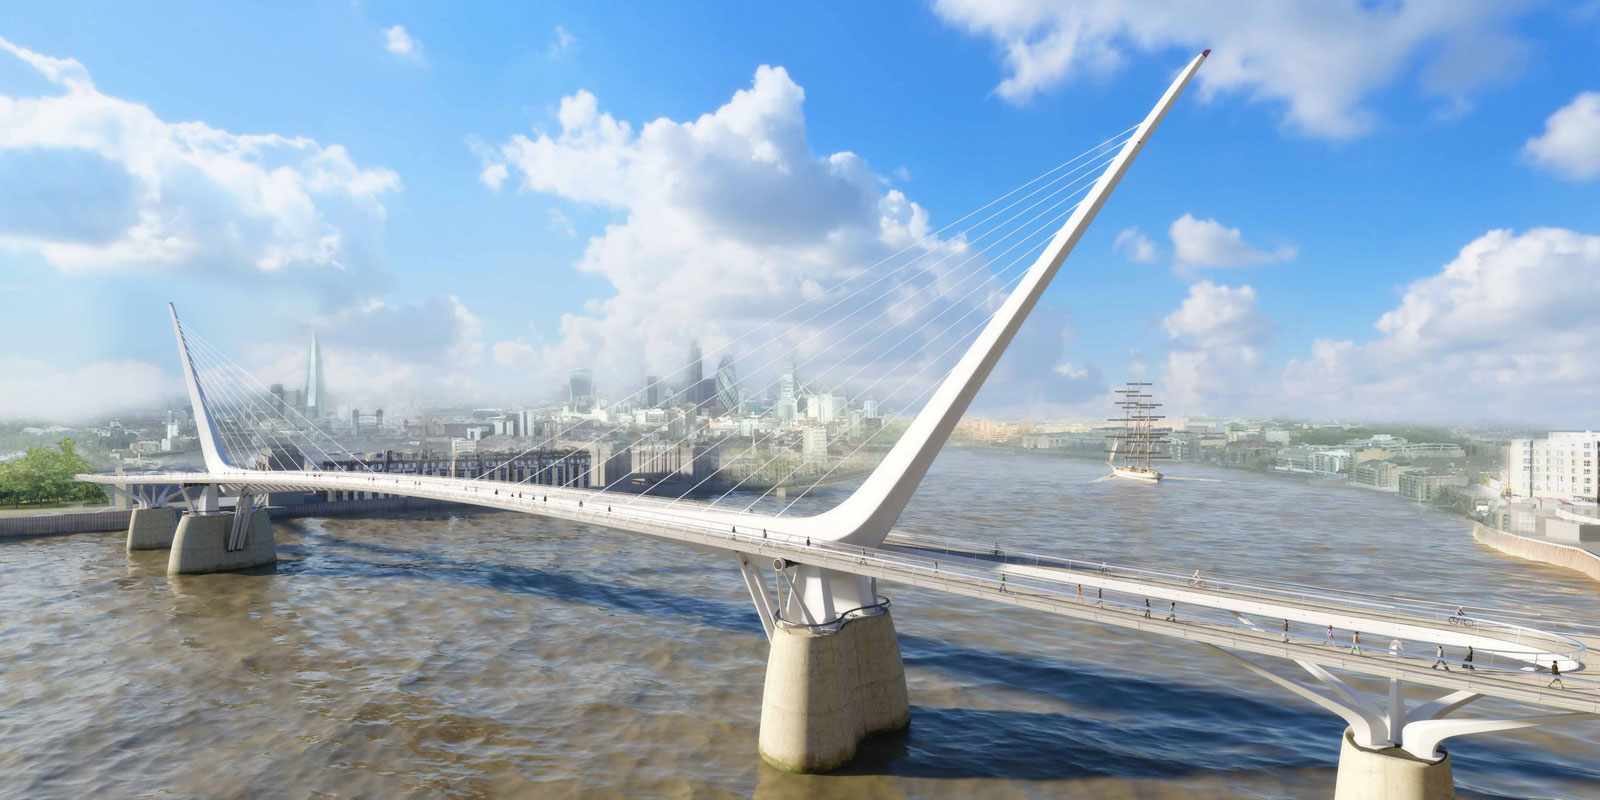 Rotherhithe to Canary Wharf bridge scrapped